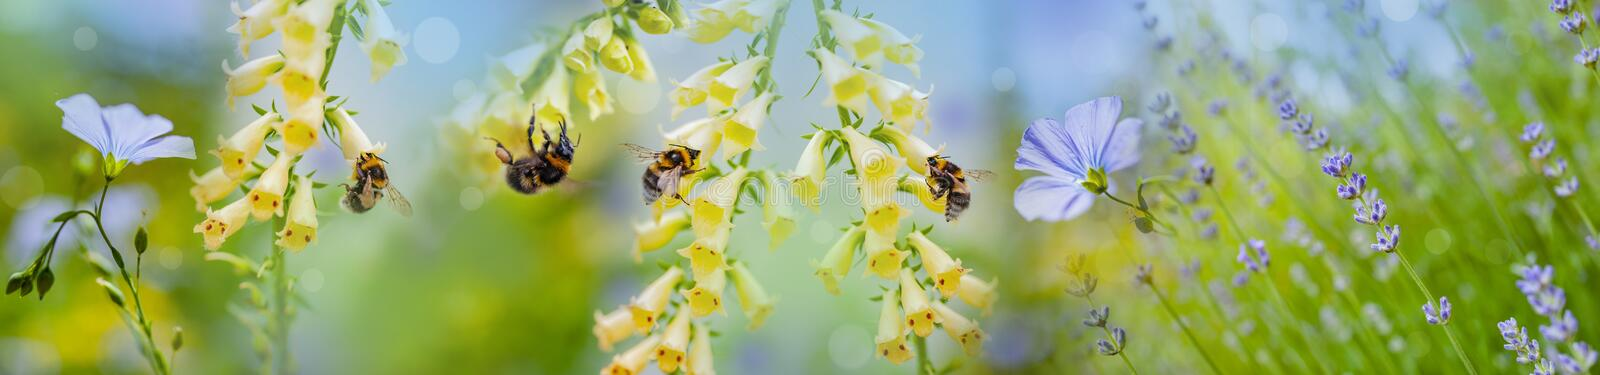 Bumblebees on flowers in the garden. Close up stock photo